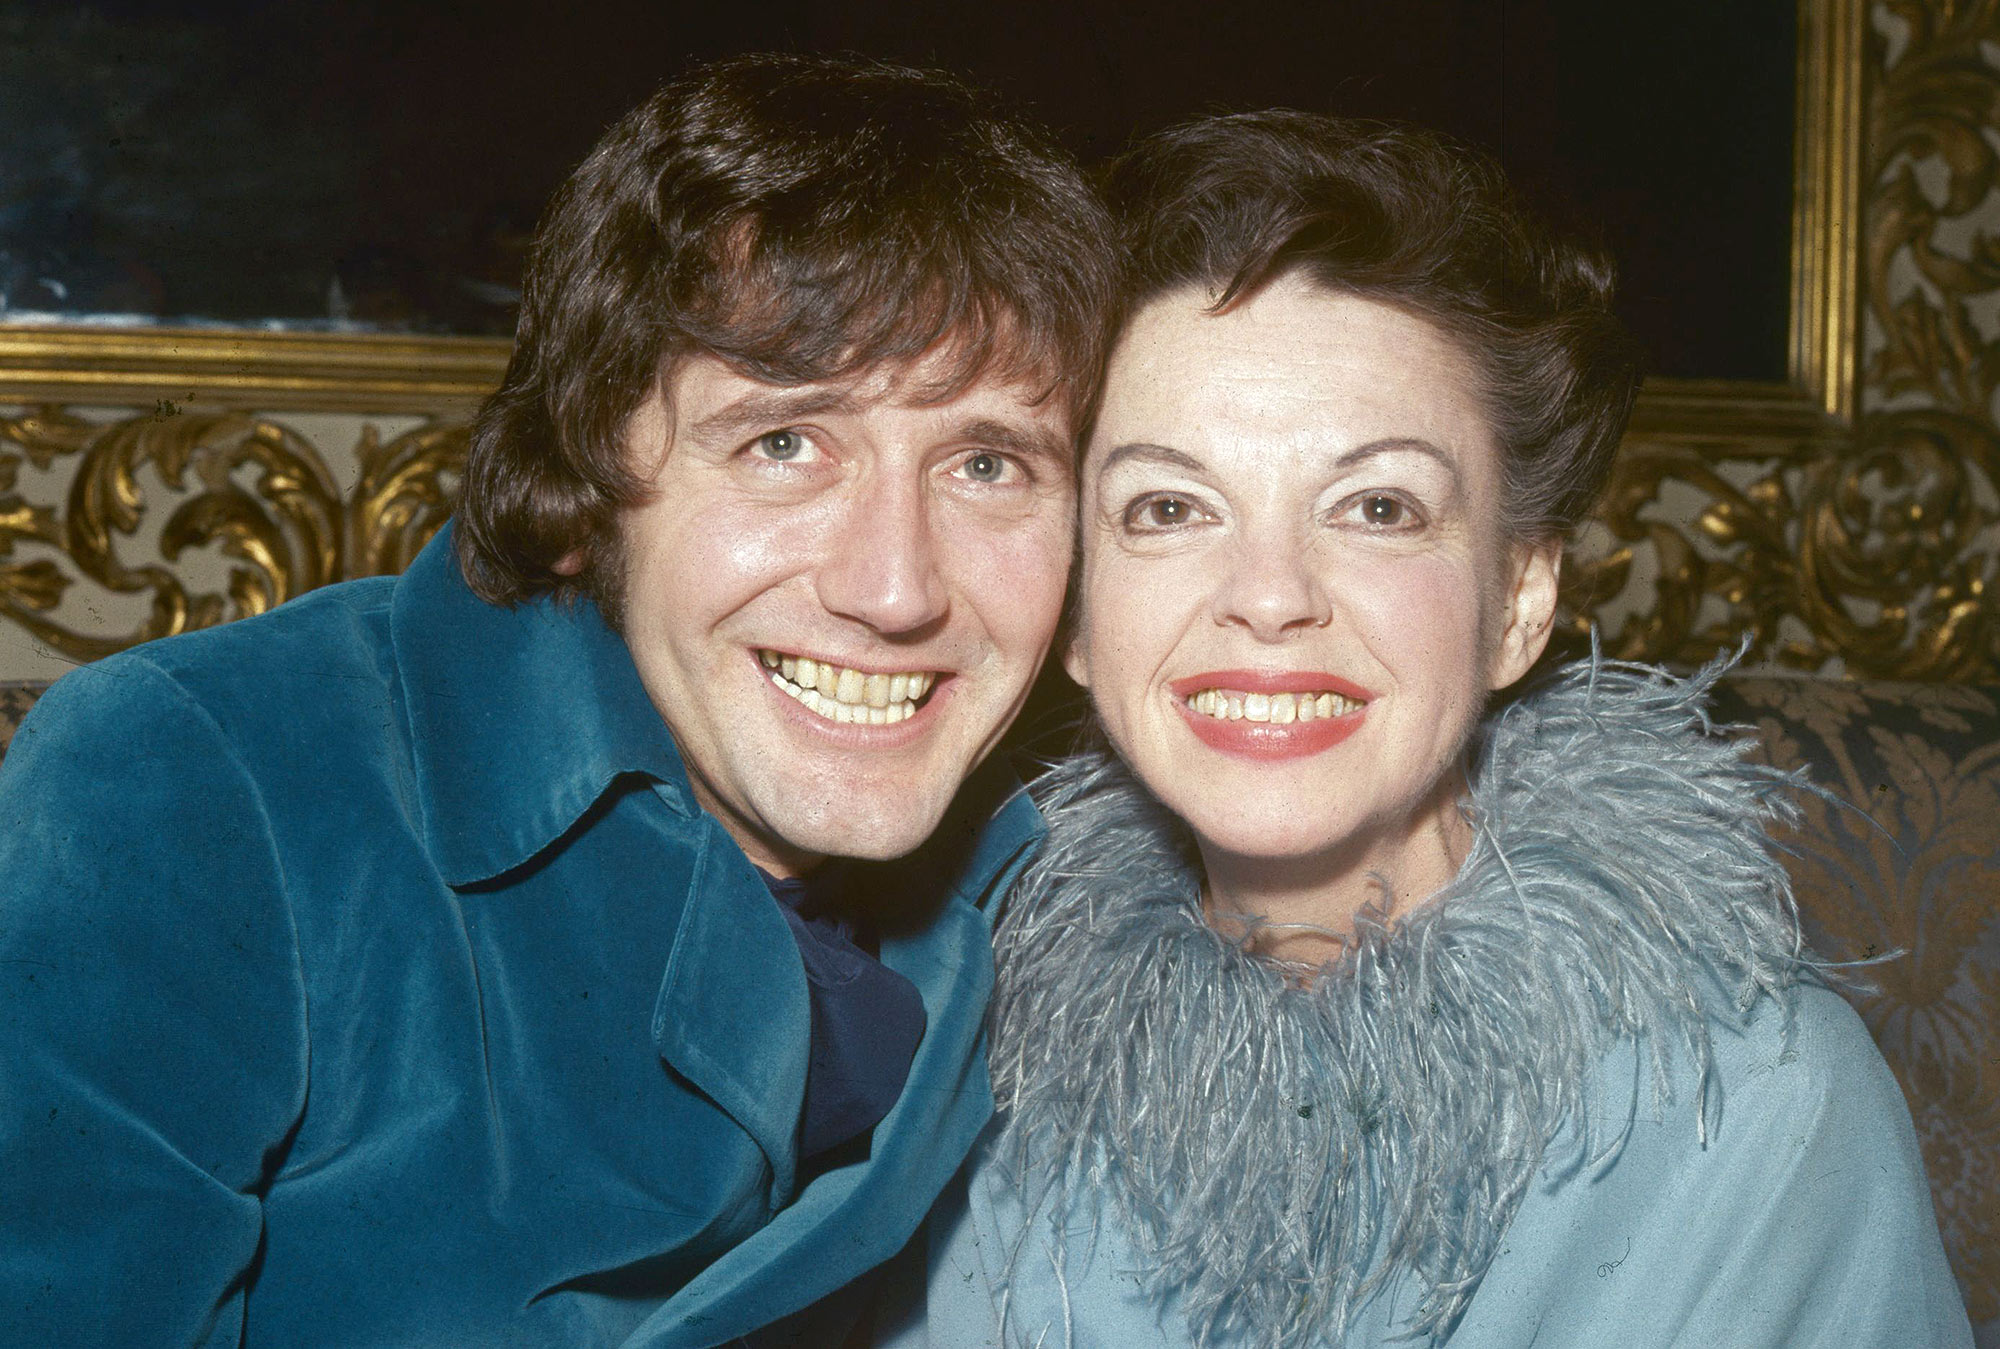 March 1969: American film actress Judy Garland (1922 - 1969) with her husband Mickey Deans after their wedding at Chelsea Register Office in London. (Photo by Central Press/Getty Images)